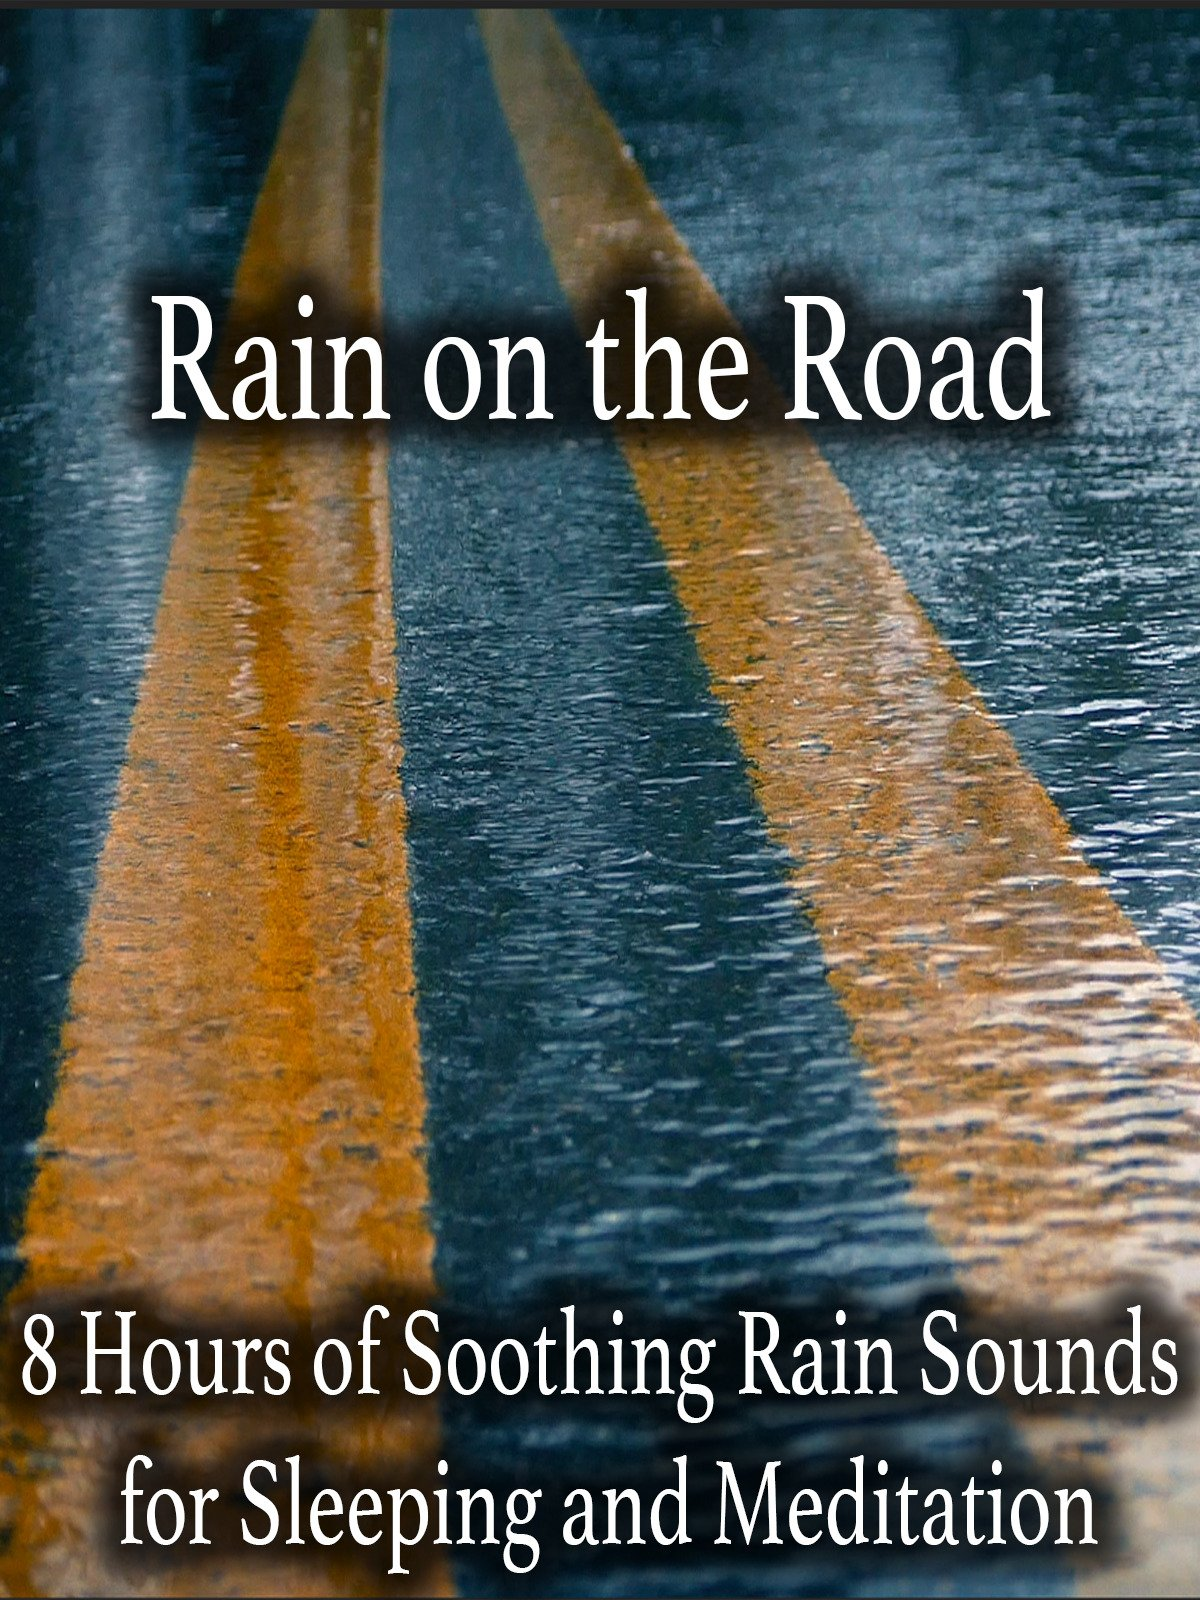 Rain on the Road 8 Hours of Soothing Rain Sounds for Sleeping and Meditation